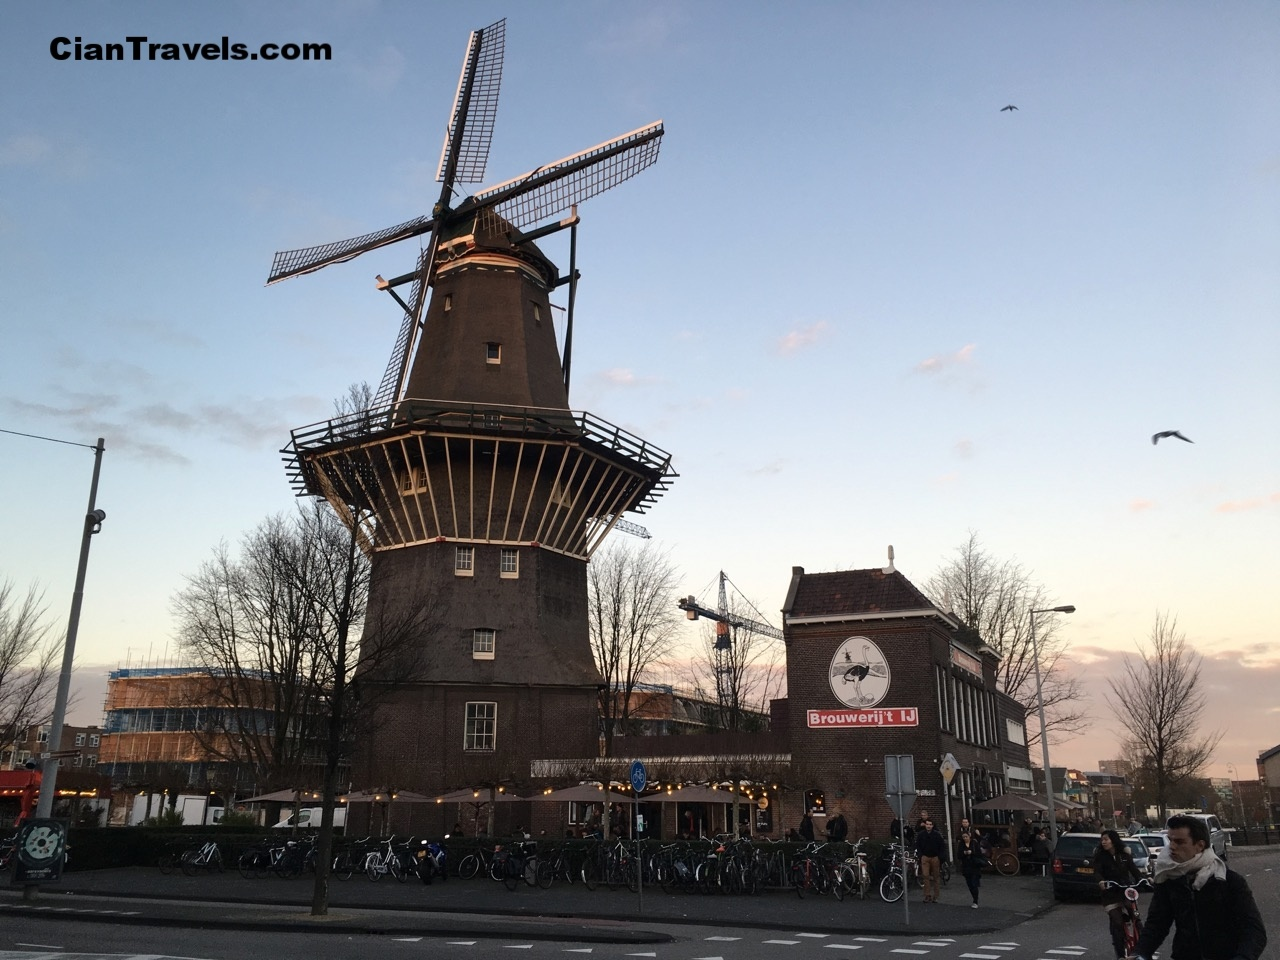 Brouwerij't IJ, a windmill/bar/brewery in Amsterdam